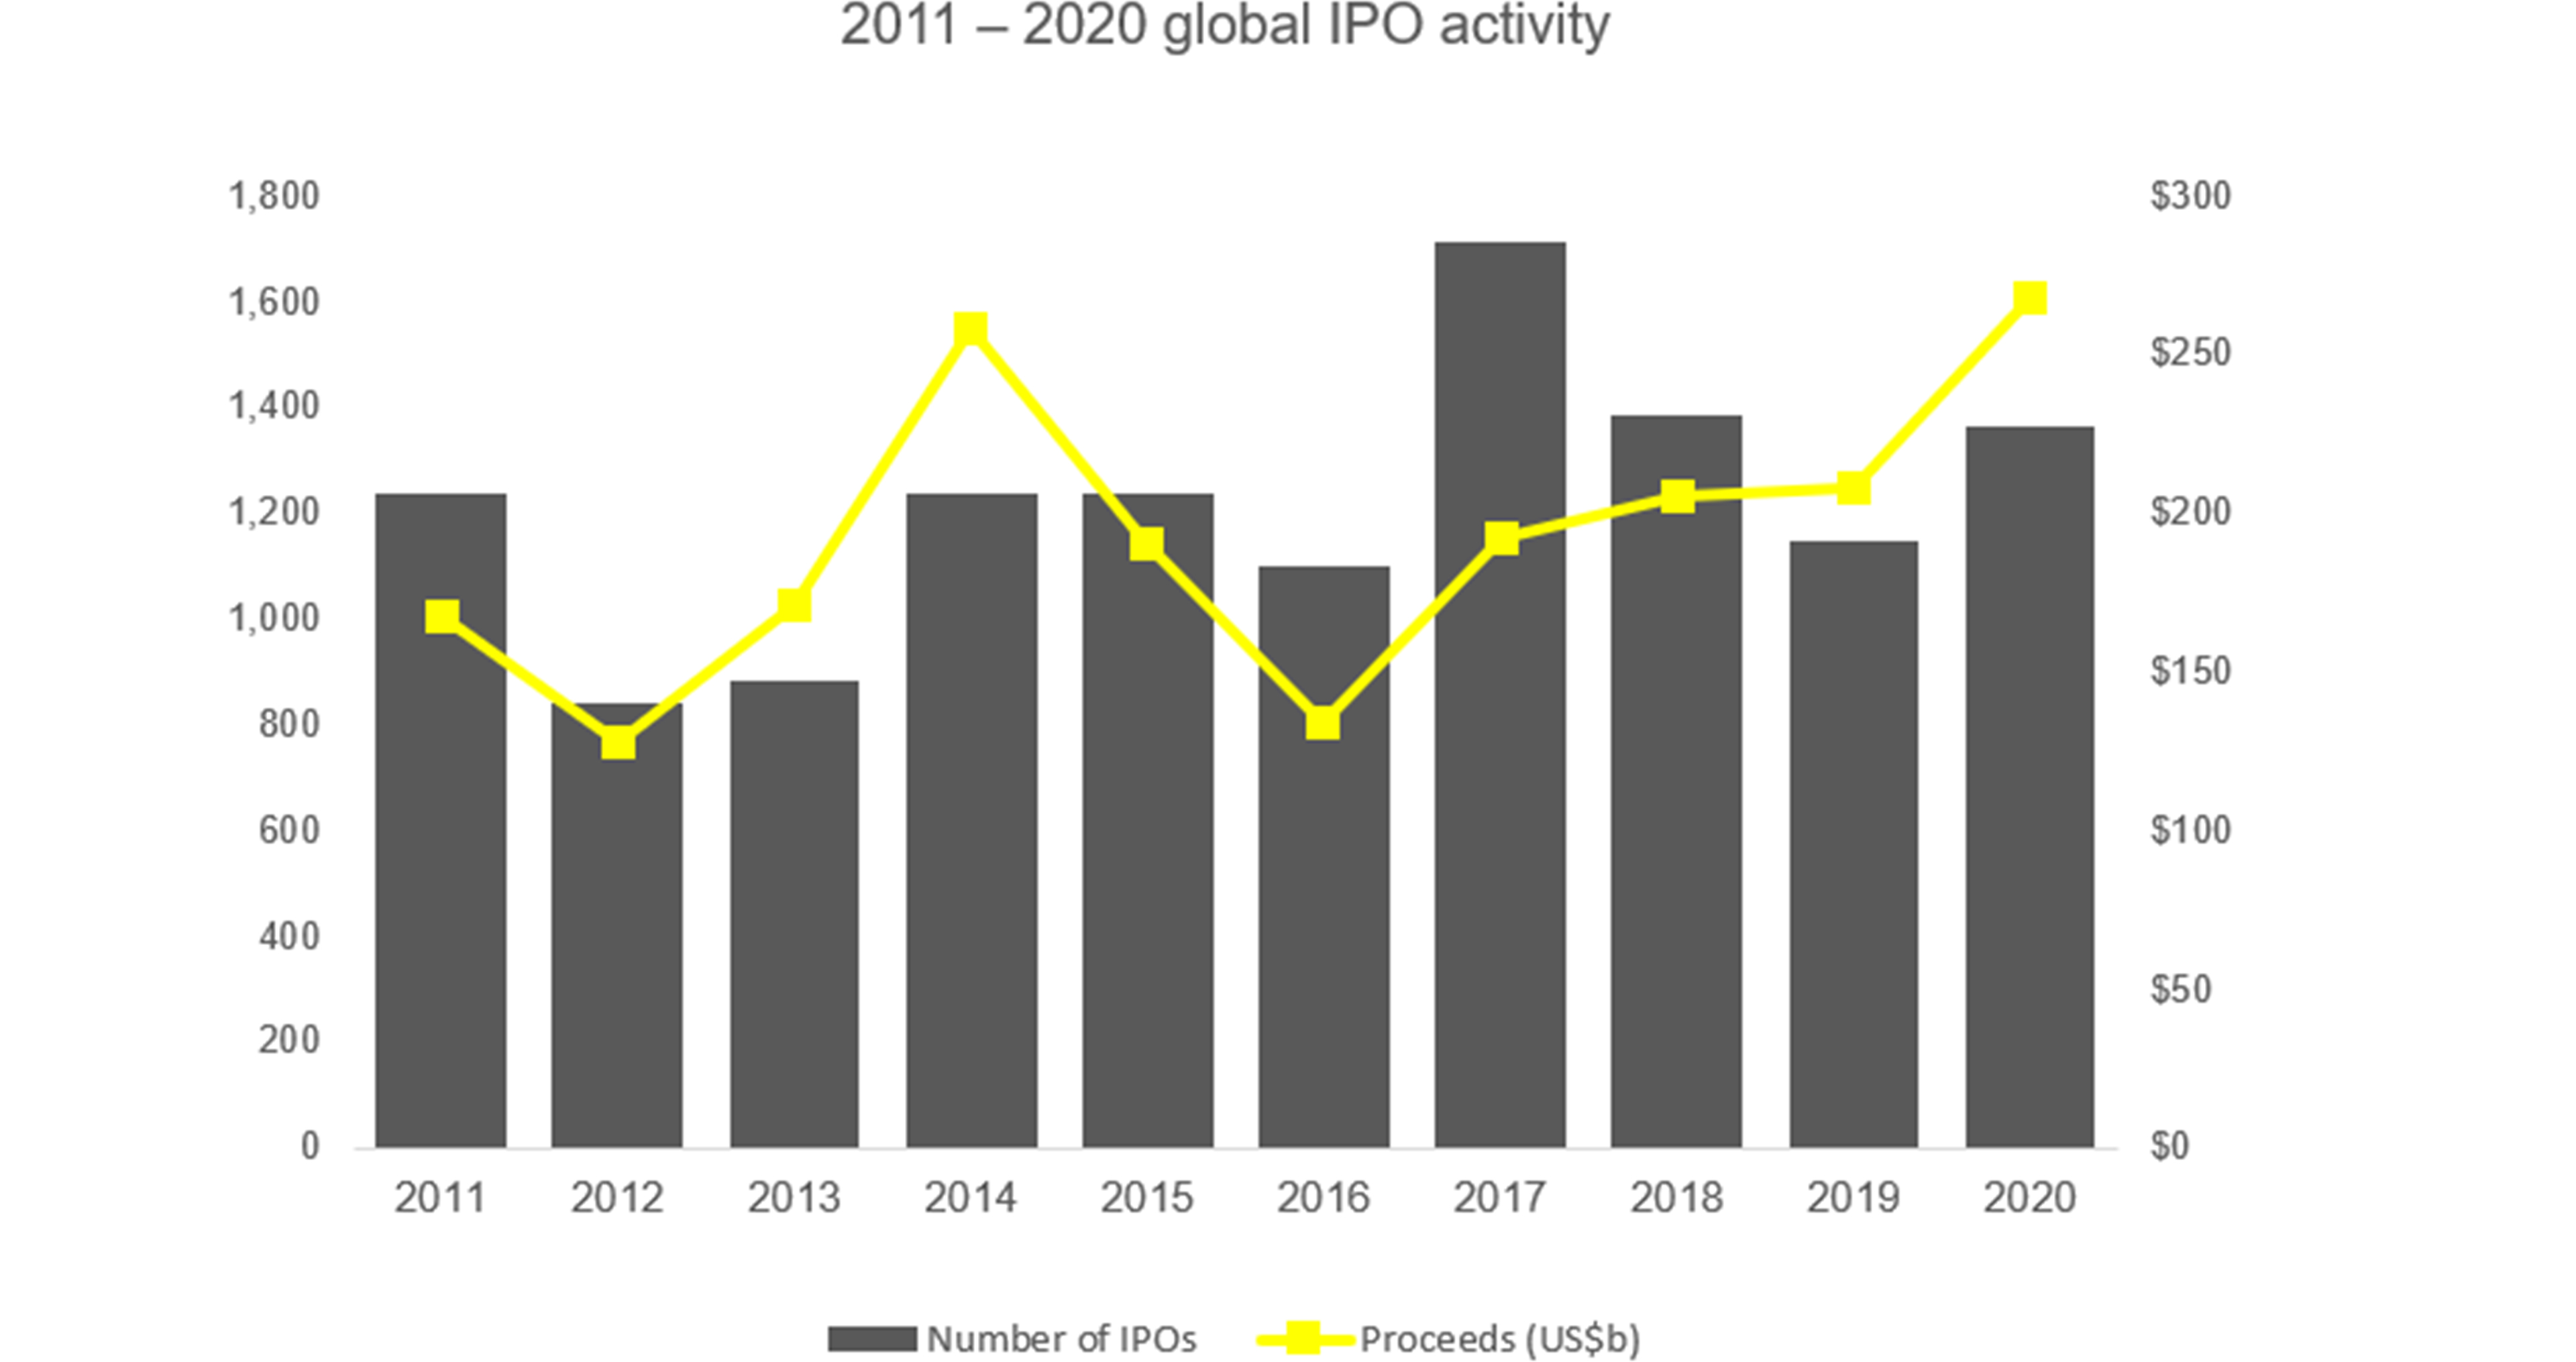 2011 -2020 global IPO activity